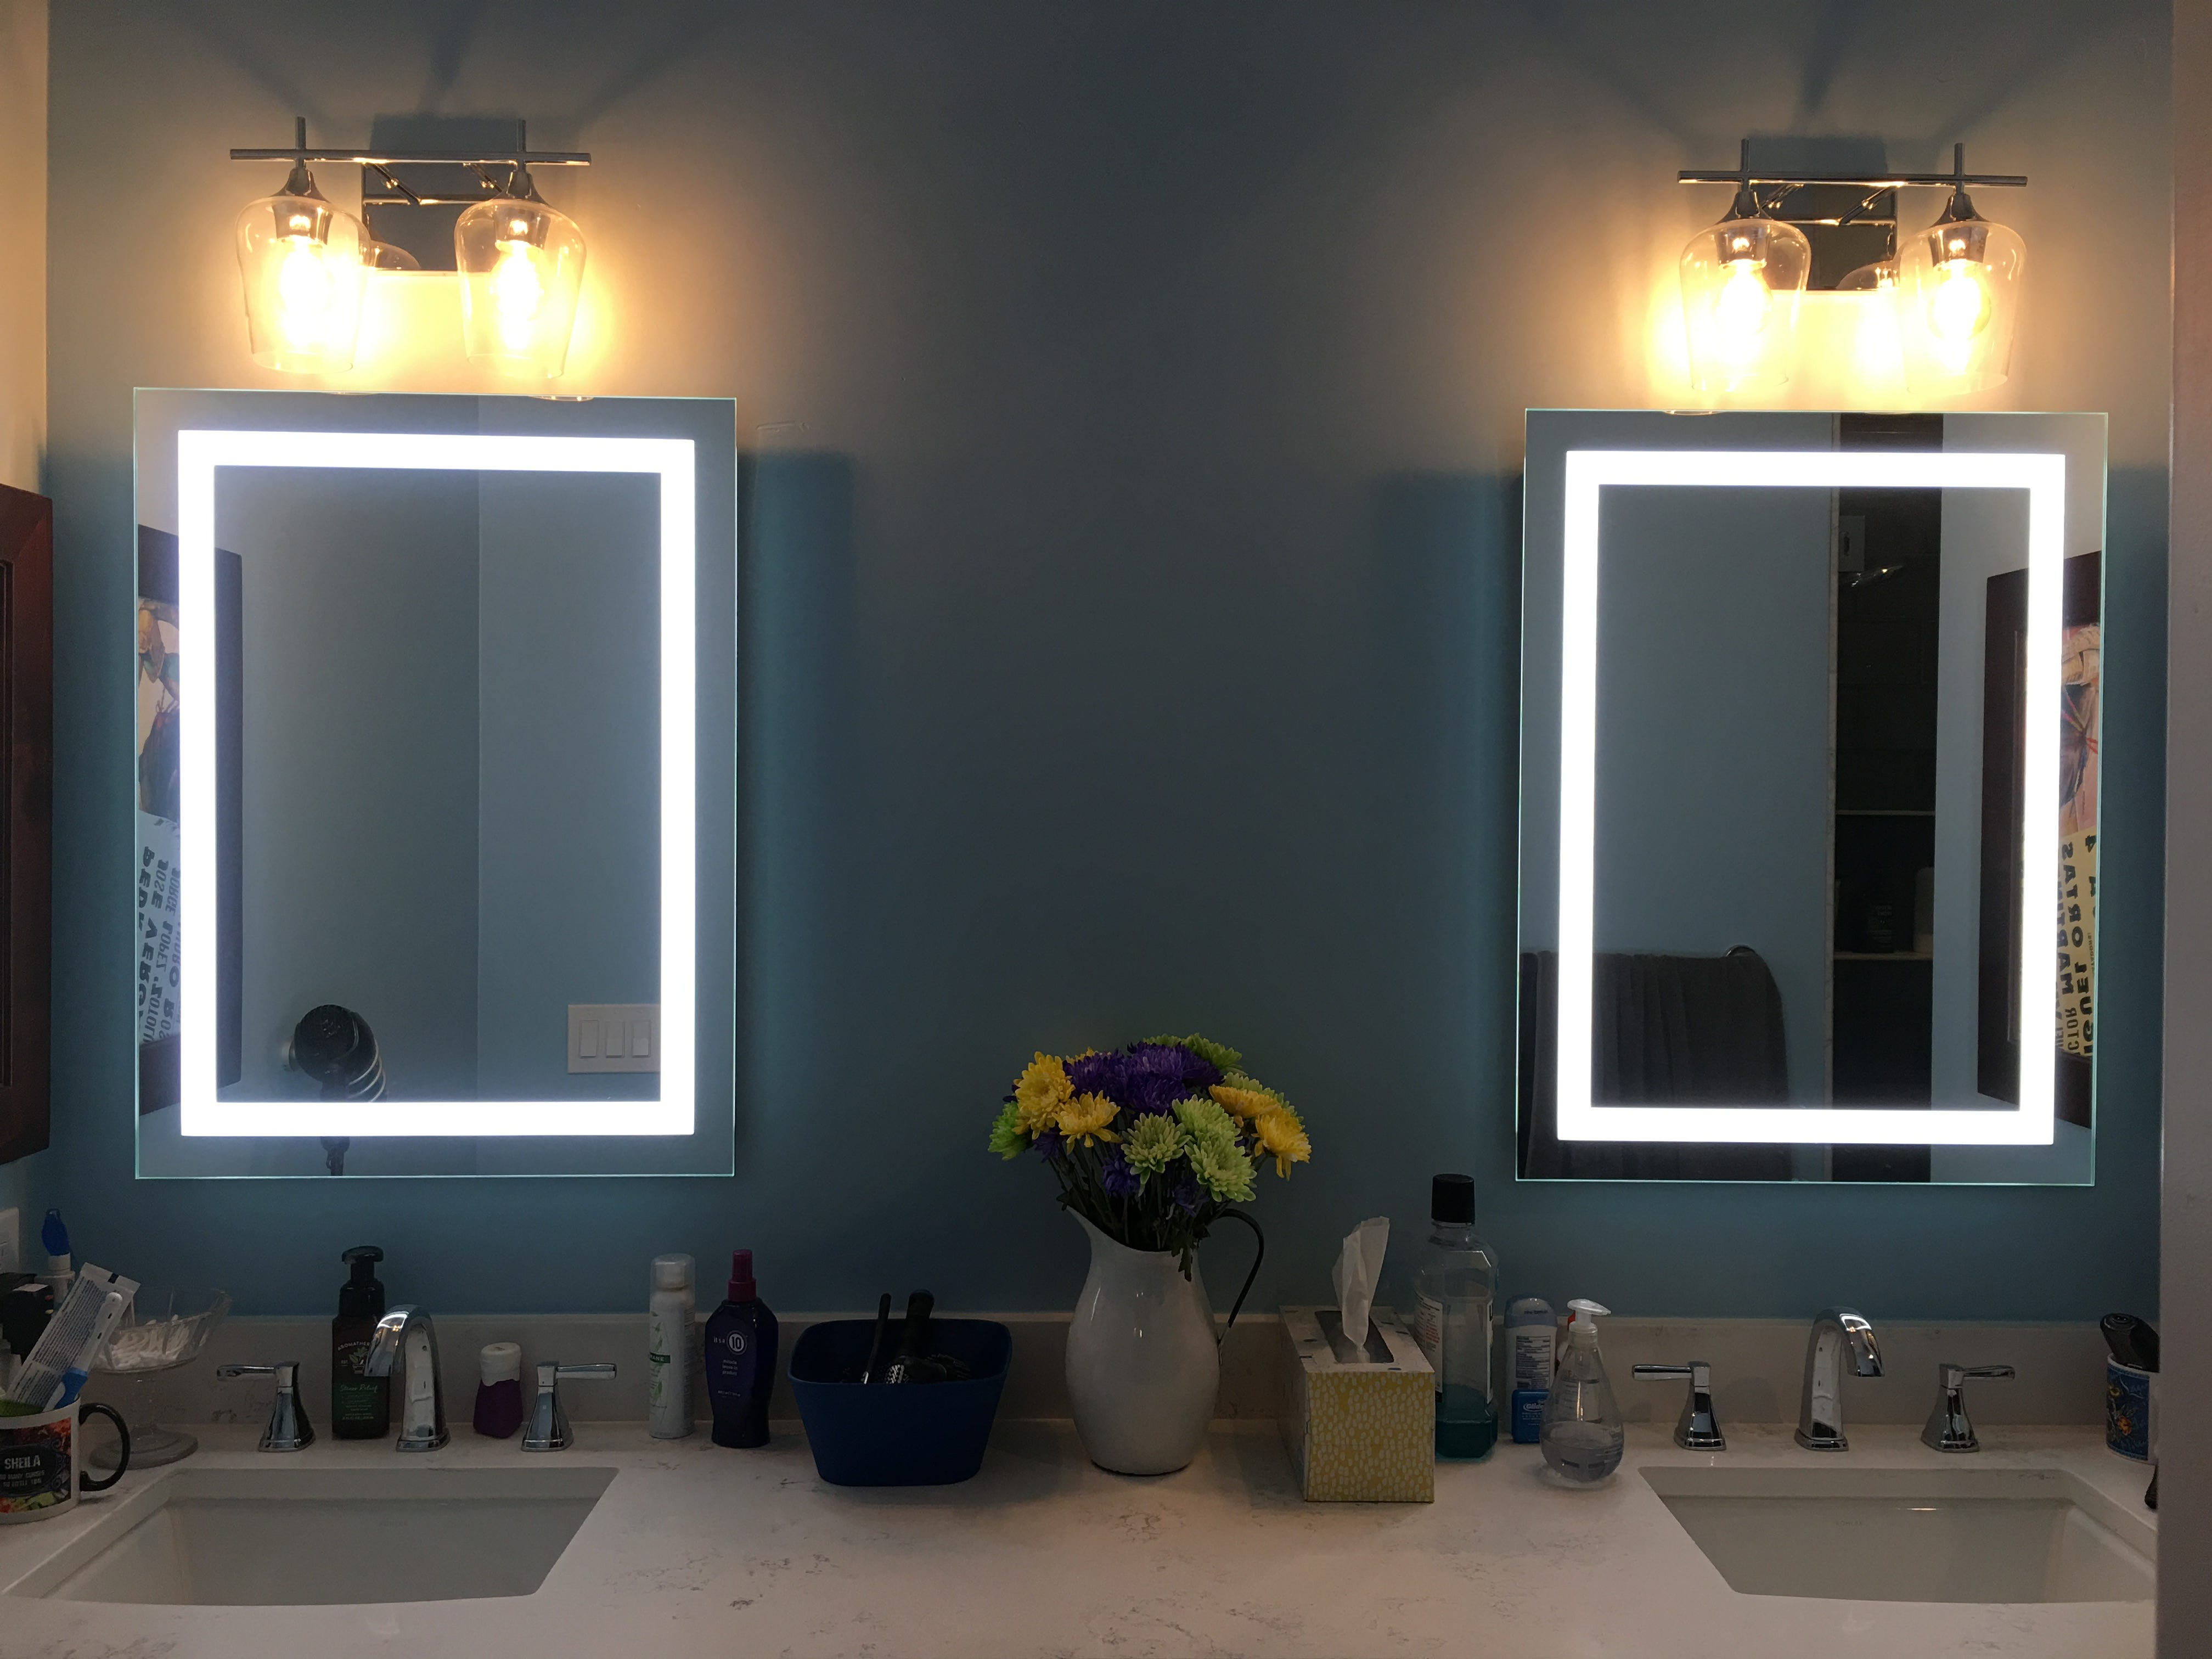 The master bathroom features dual sinks and lighted mirrors.